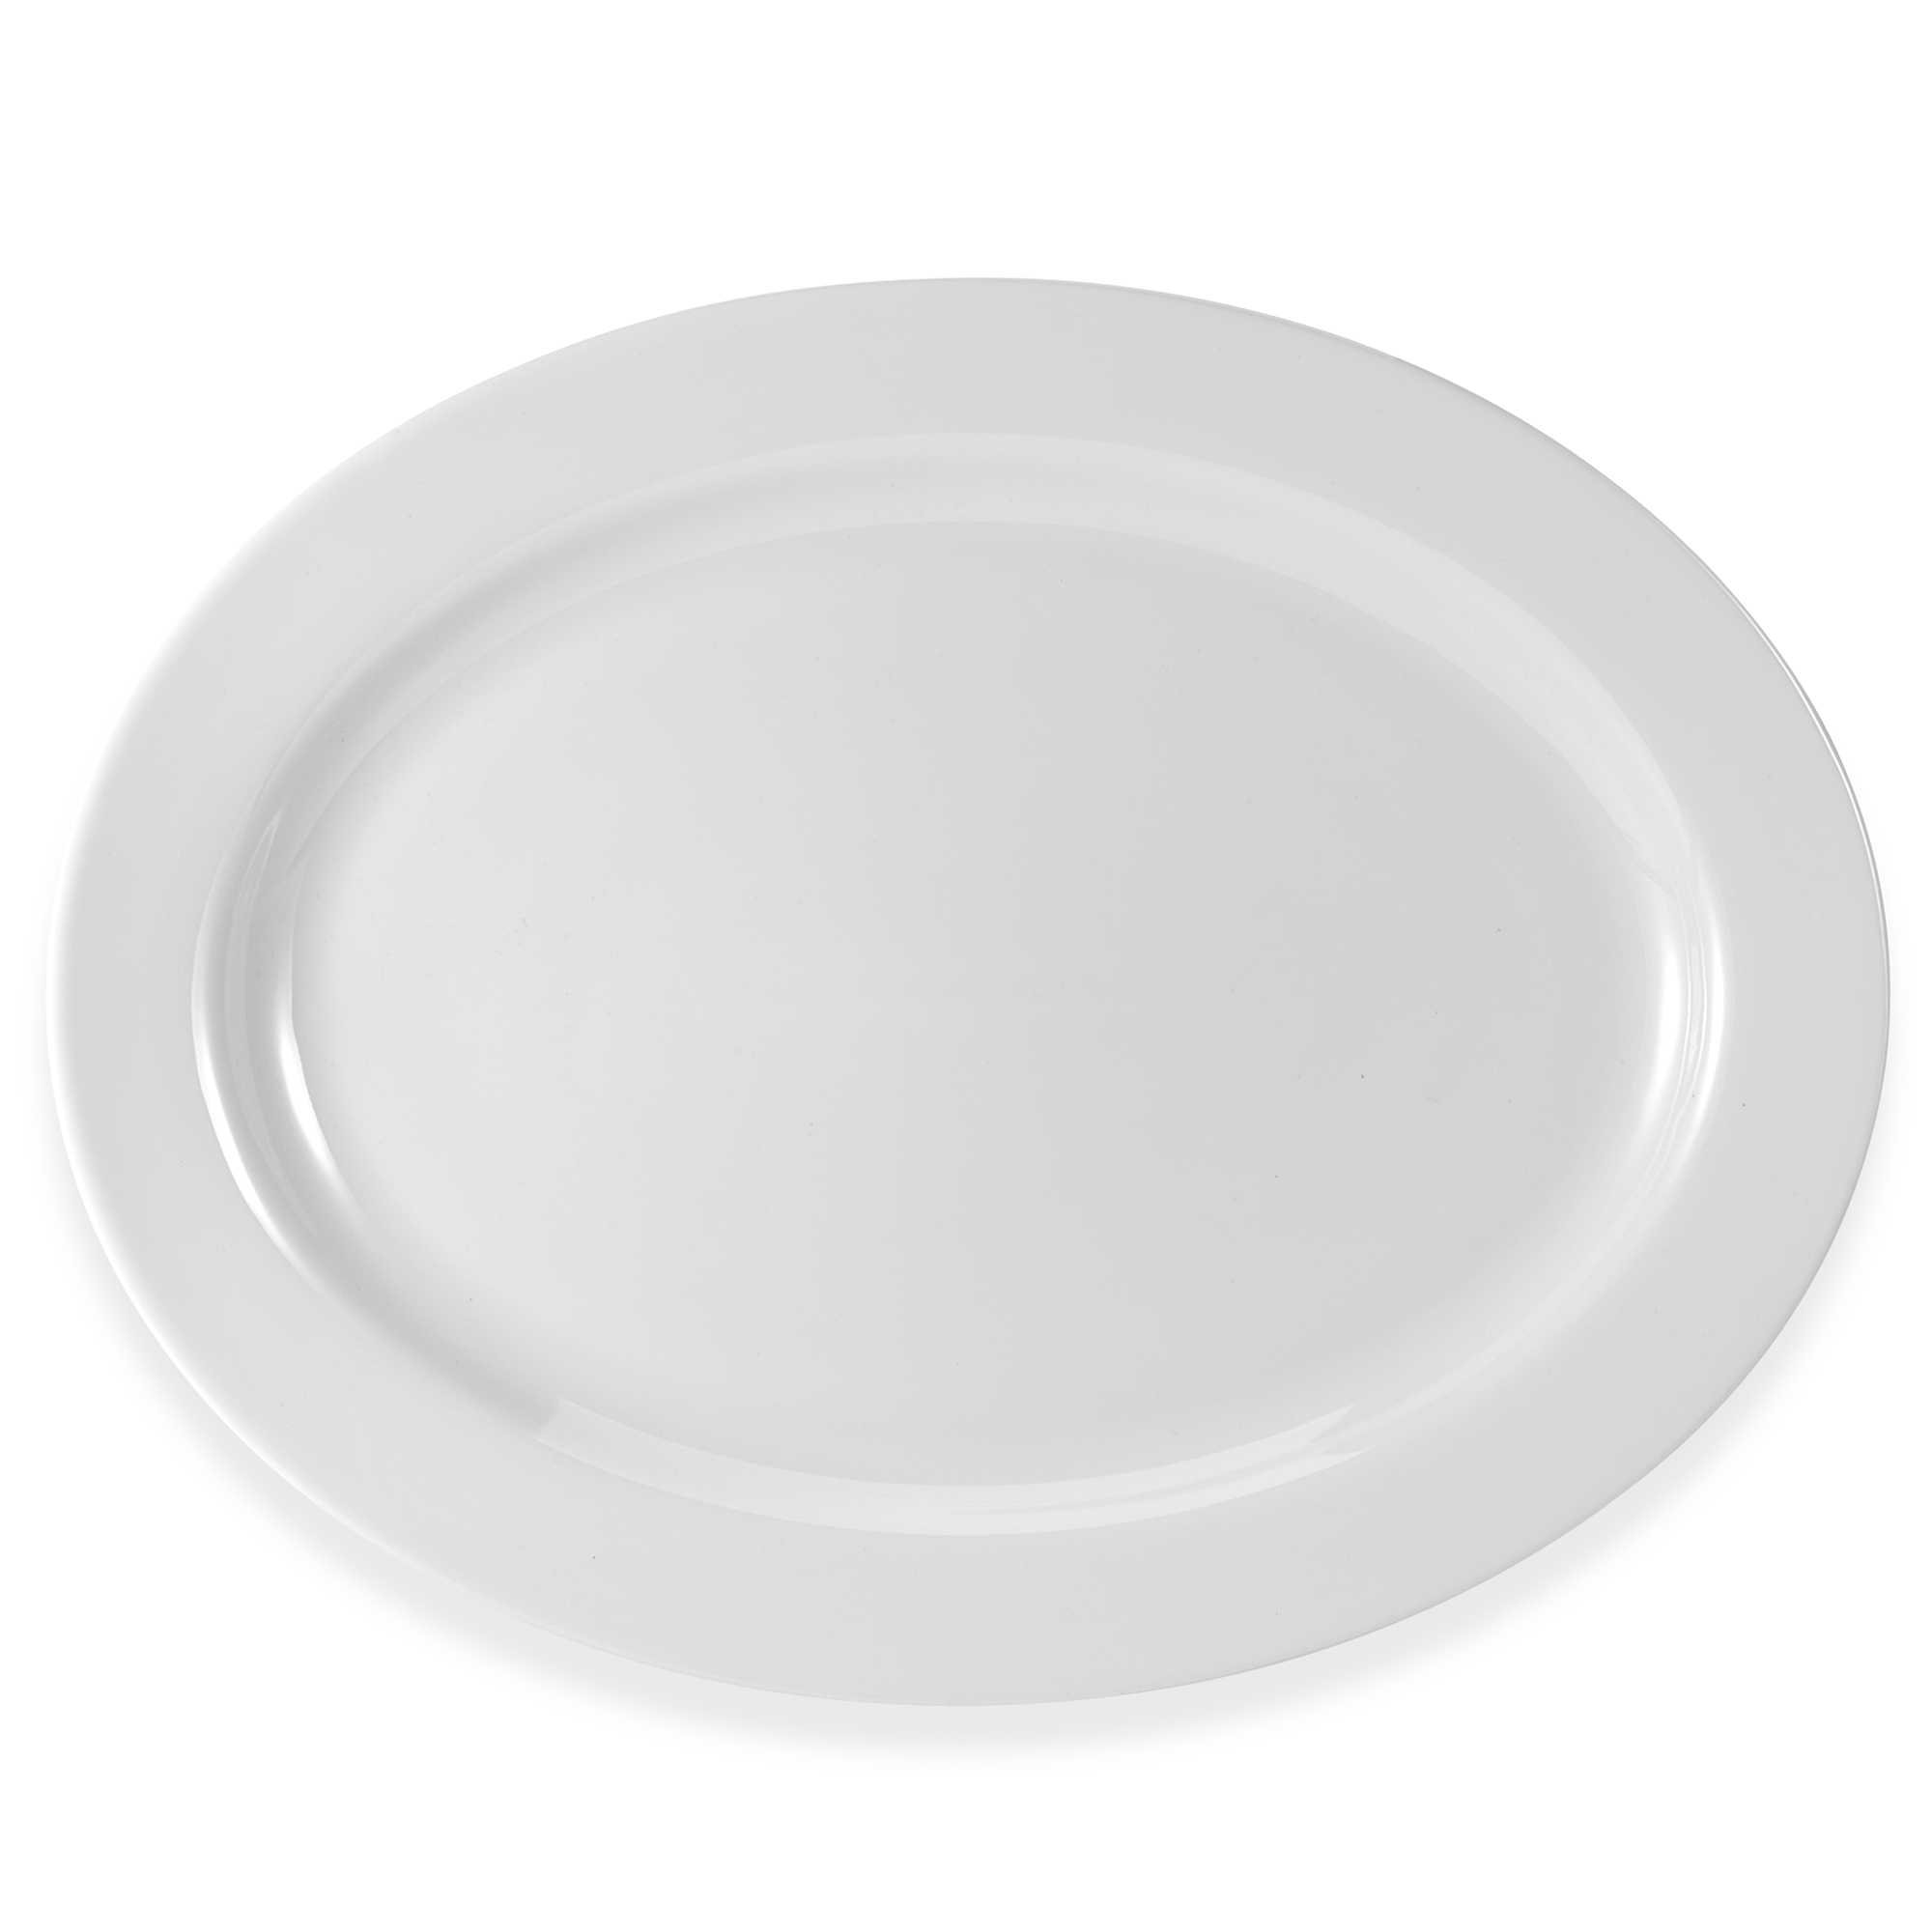 Everyday White by Fitz and Floyd Rim 16-Inch Oval Platter. Measures 15-3/4 in diameter by Everyday White